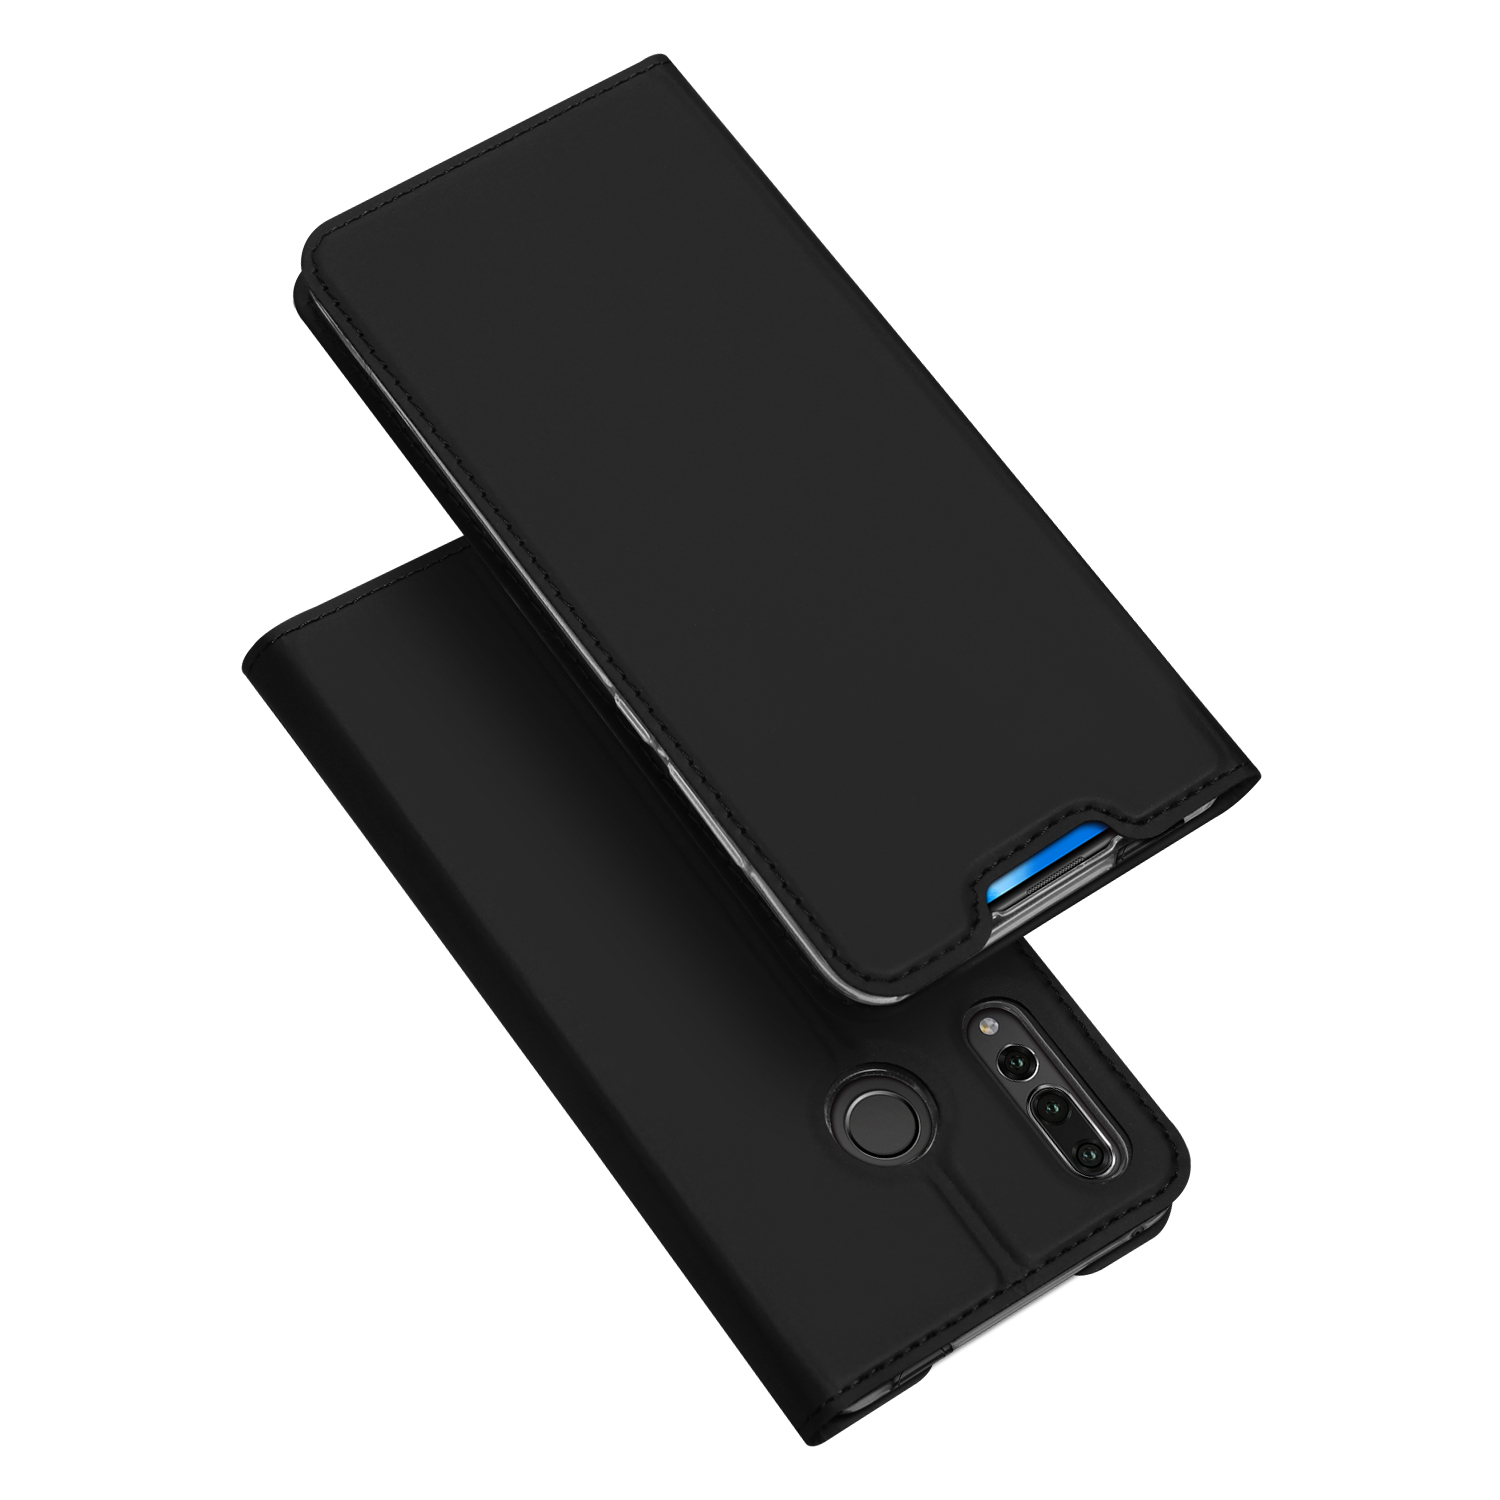 DUX DUCIS for HUAWEI Y9 Prime 2019 Solid Color Magnetic Attraction Leather Protective Phone Case with Card Slot Bracket black